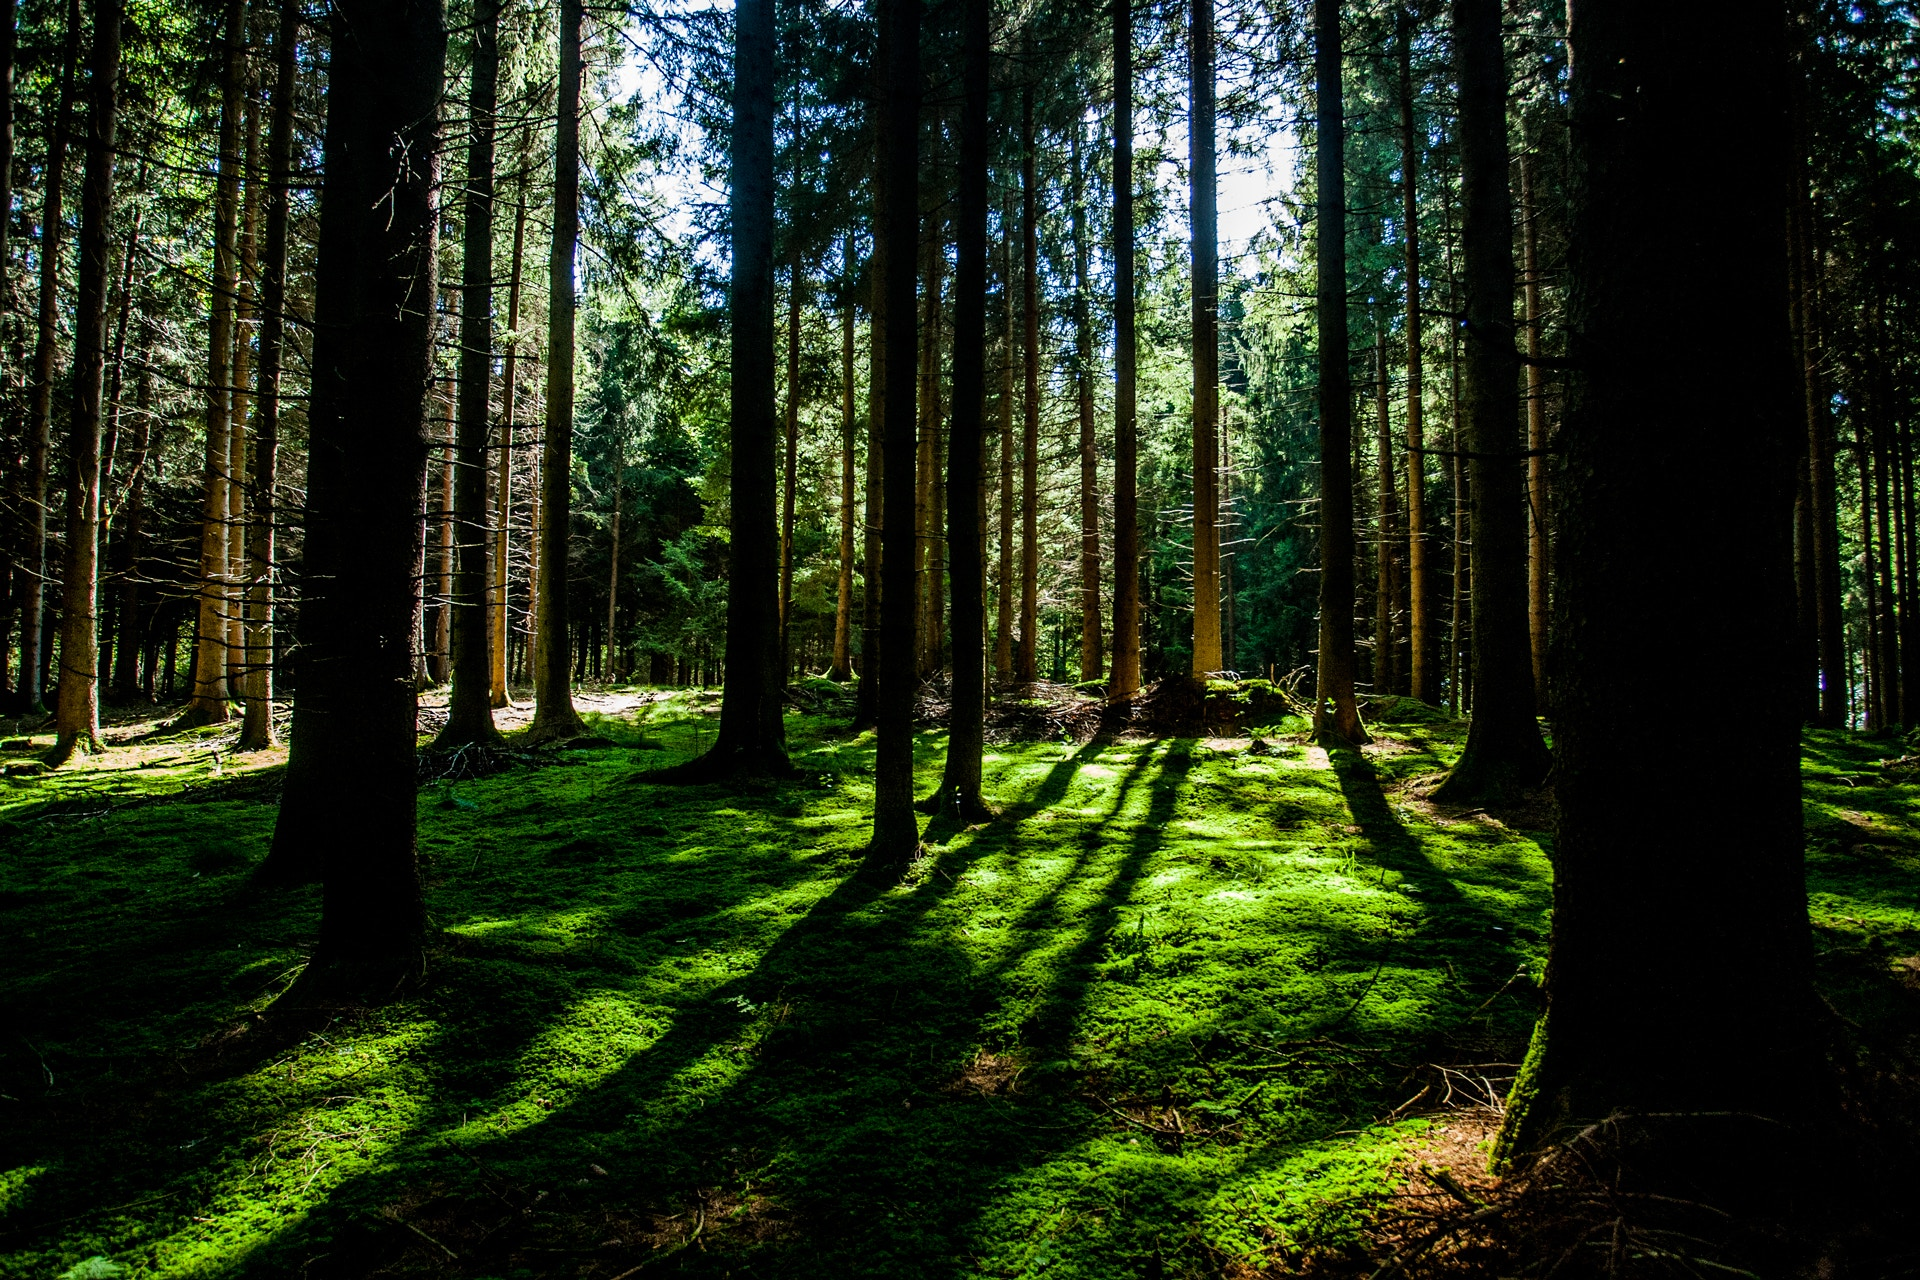 See the forest. -